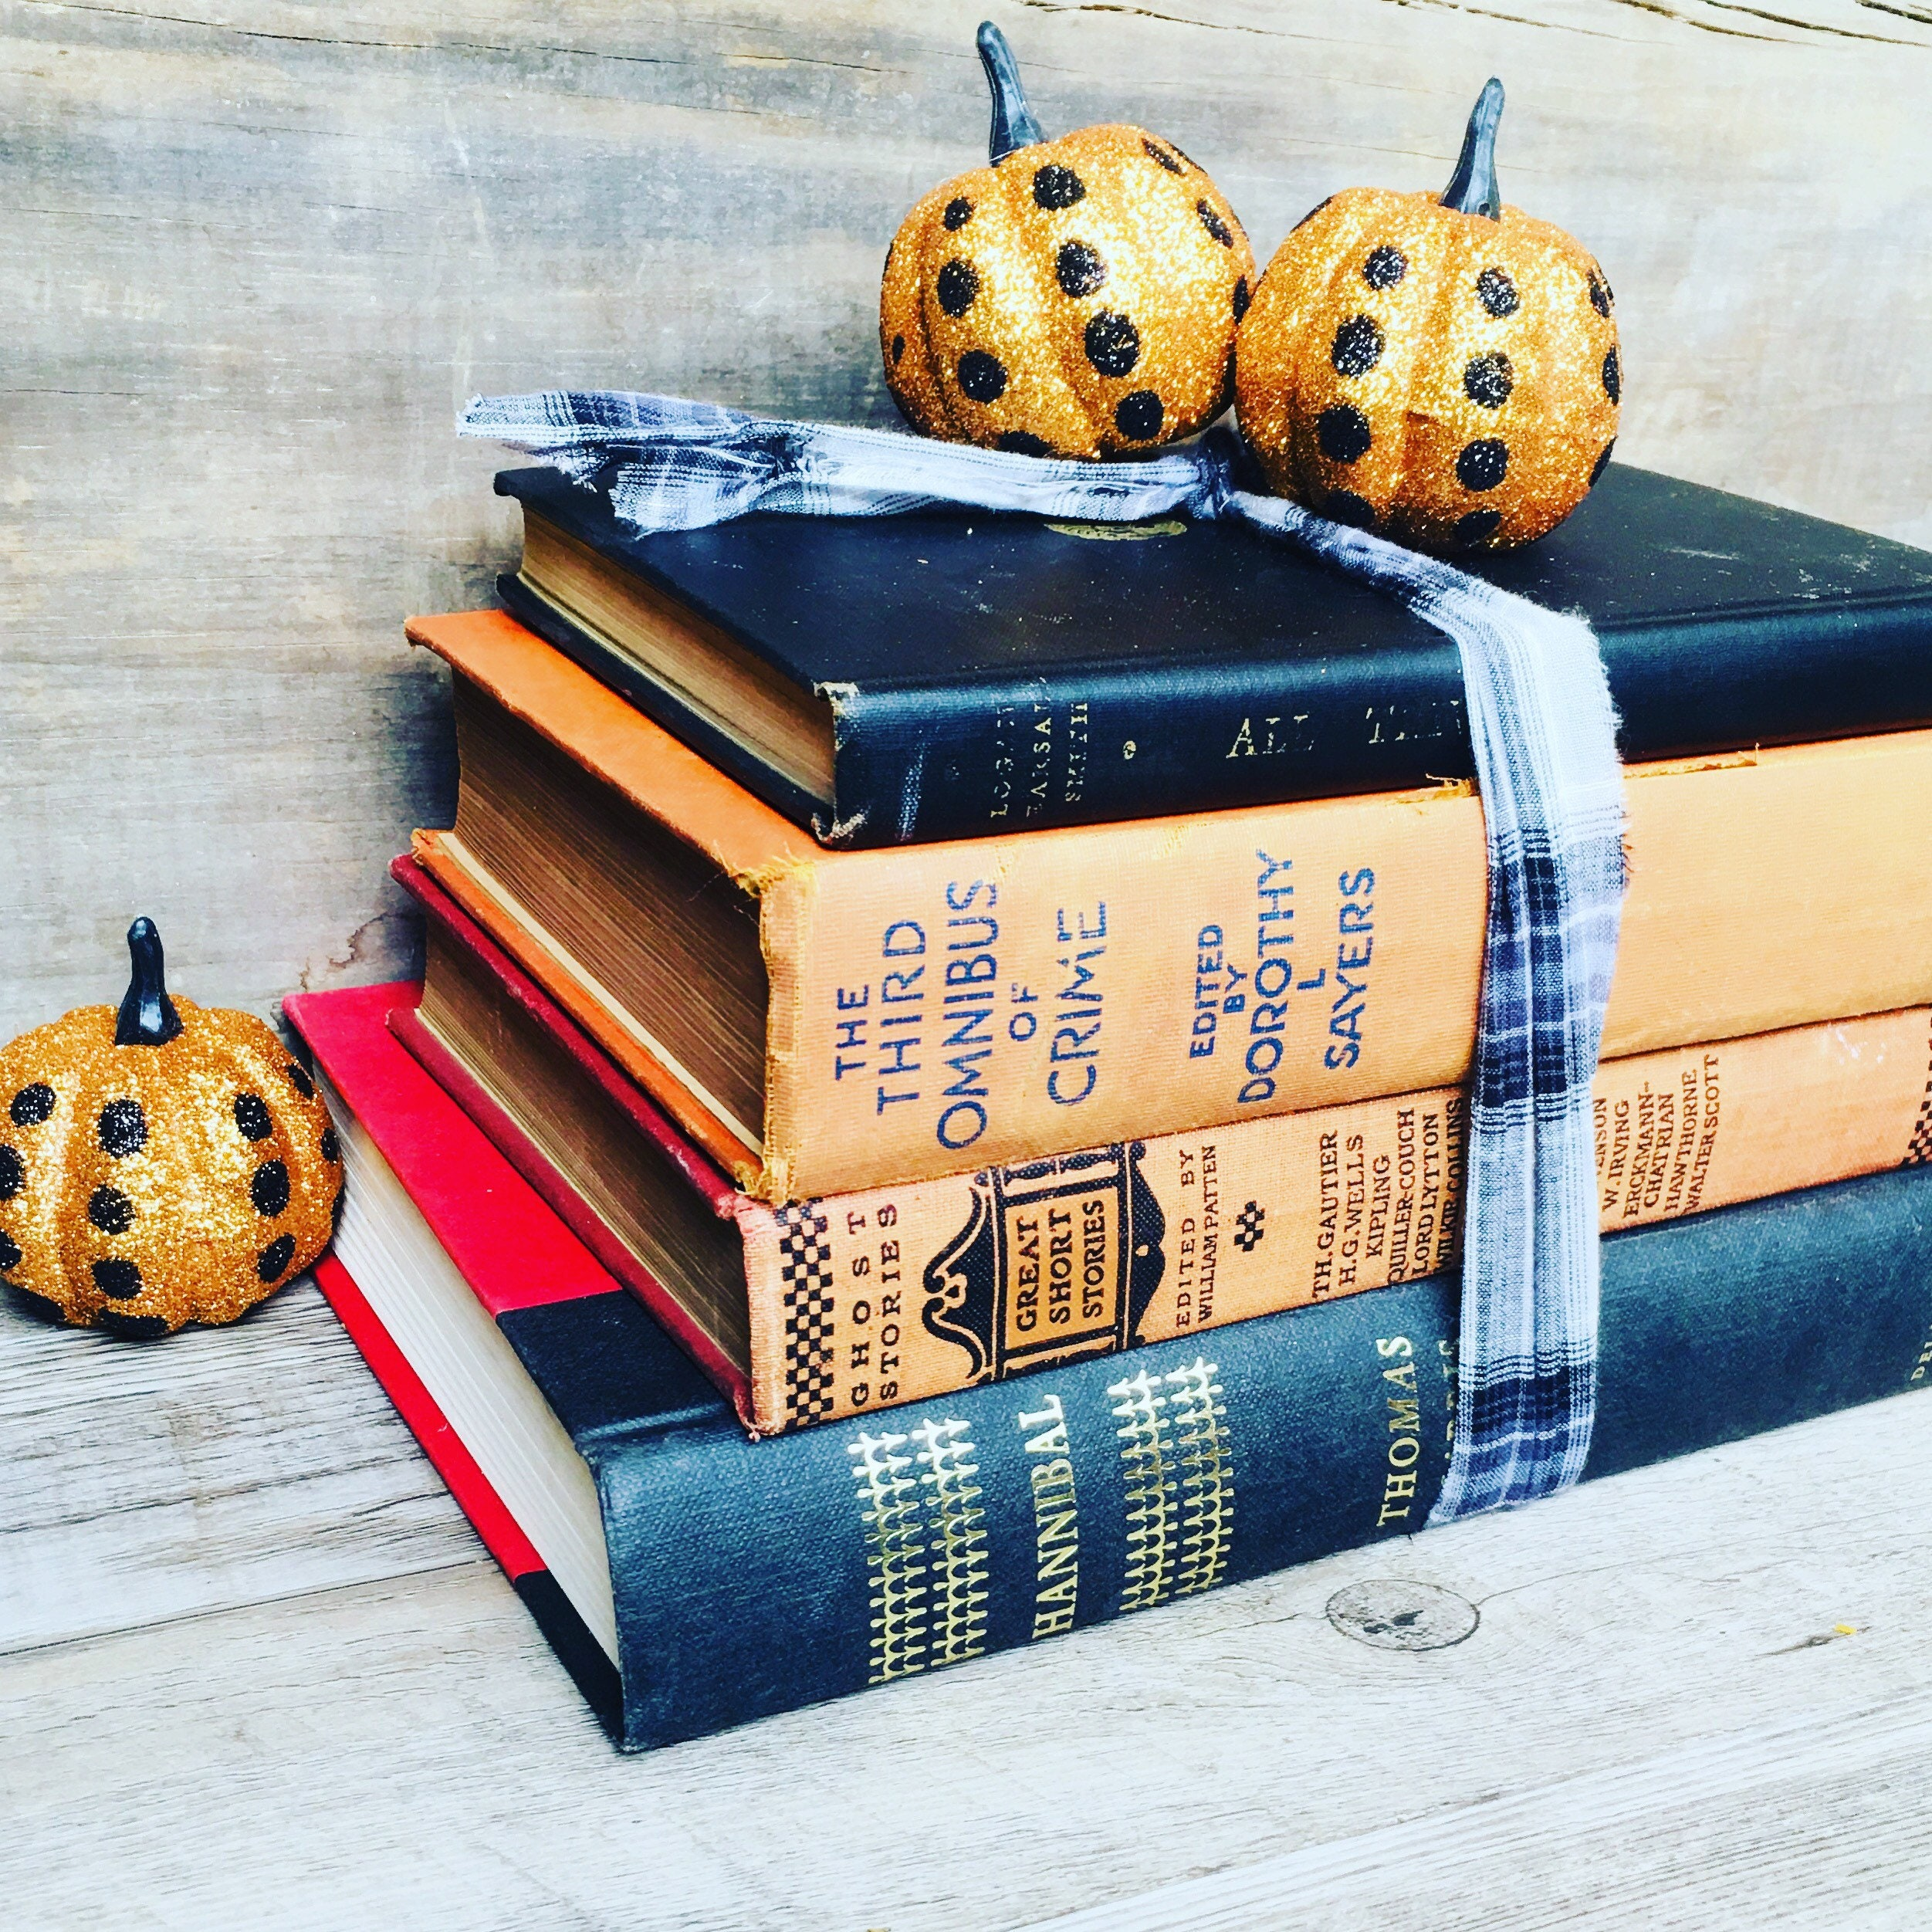 Sale Halloween Decor Book Bundle Decorative Books With Sparkly